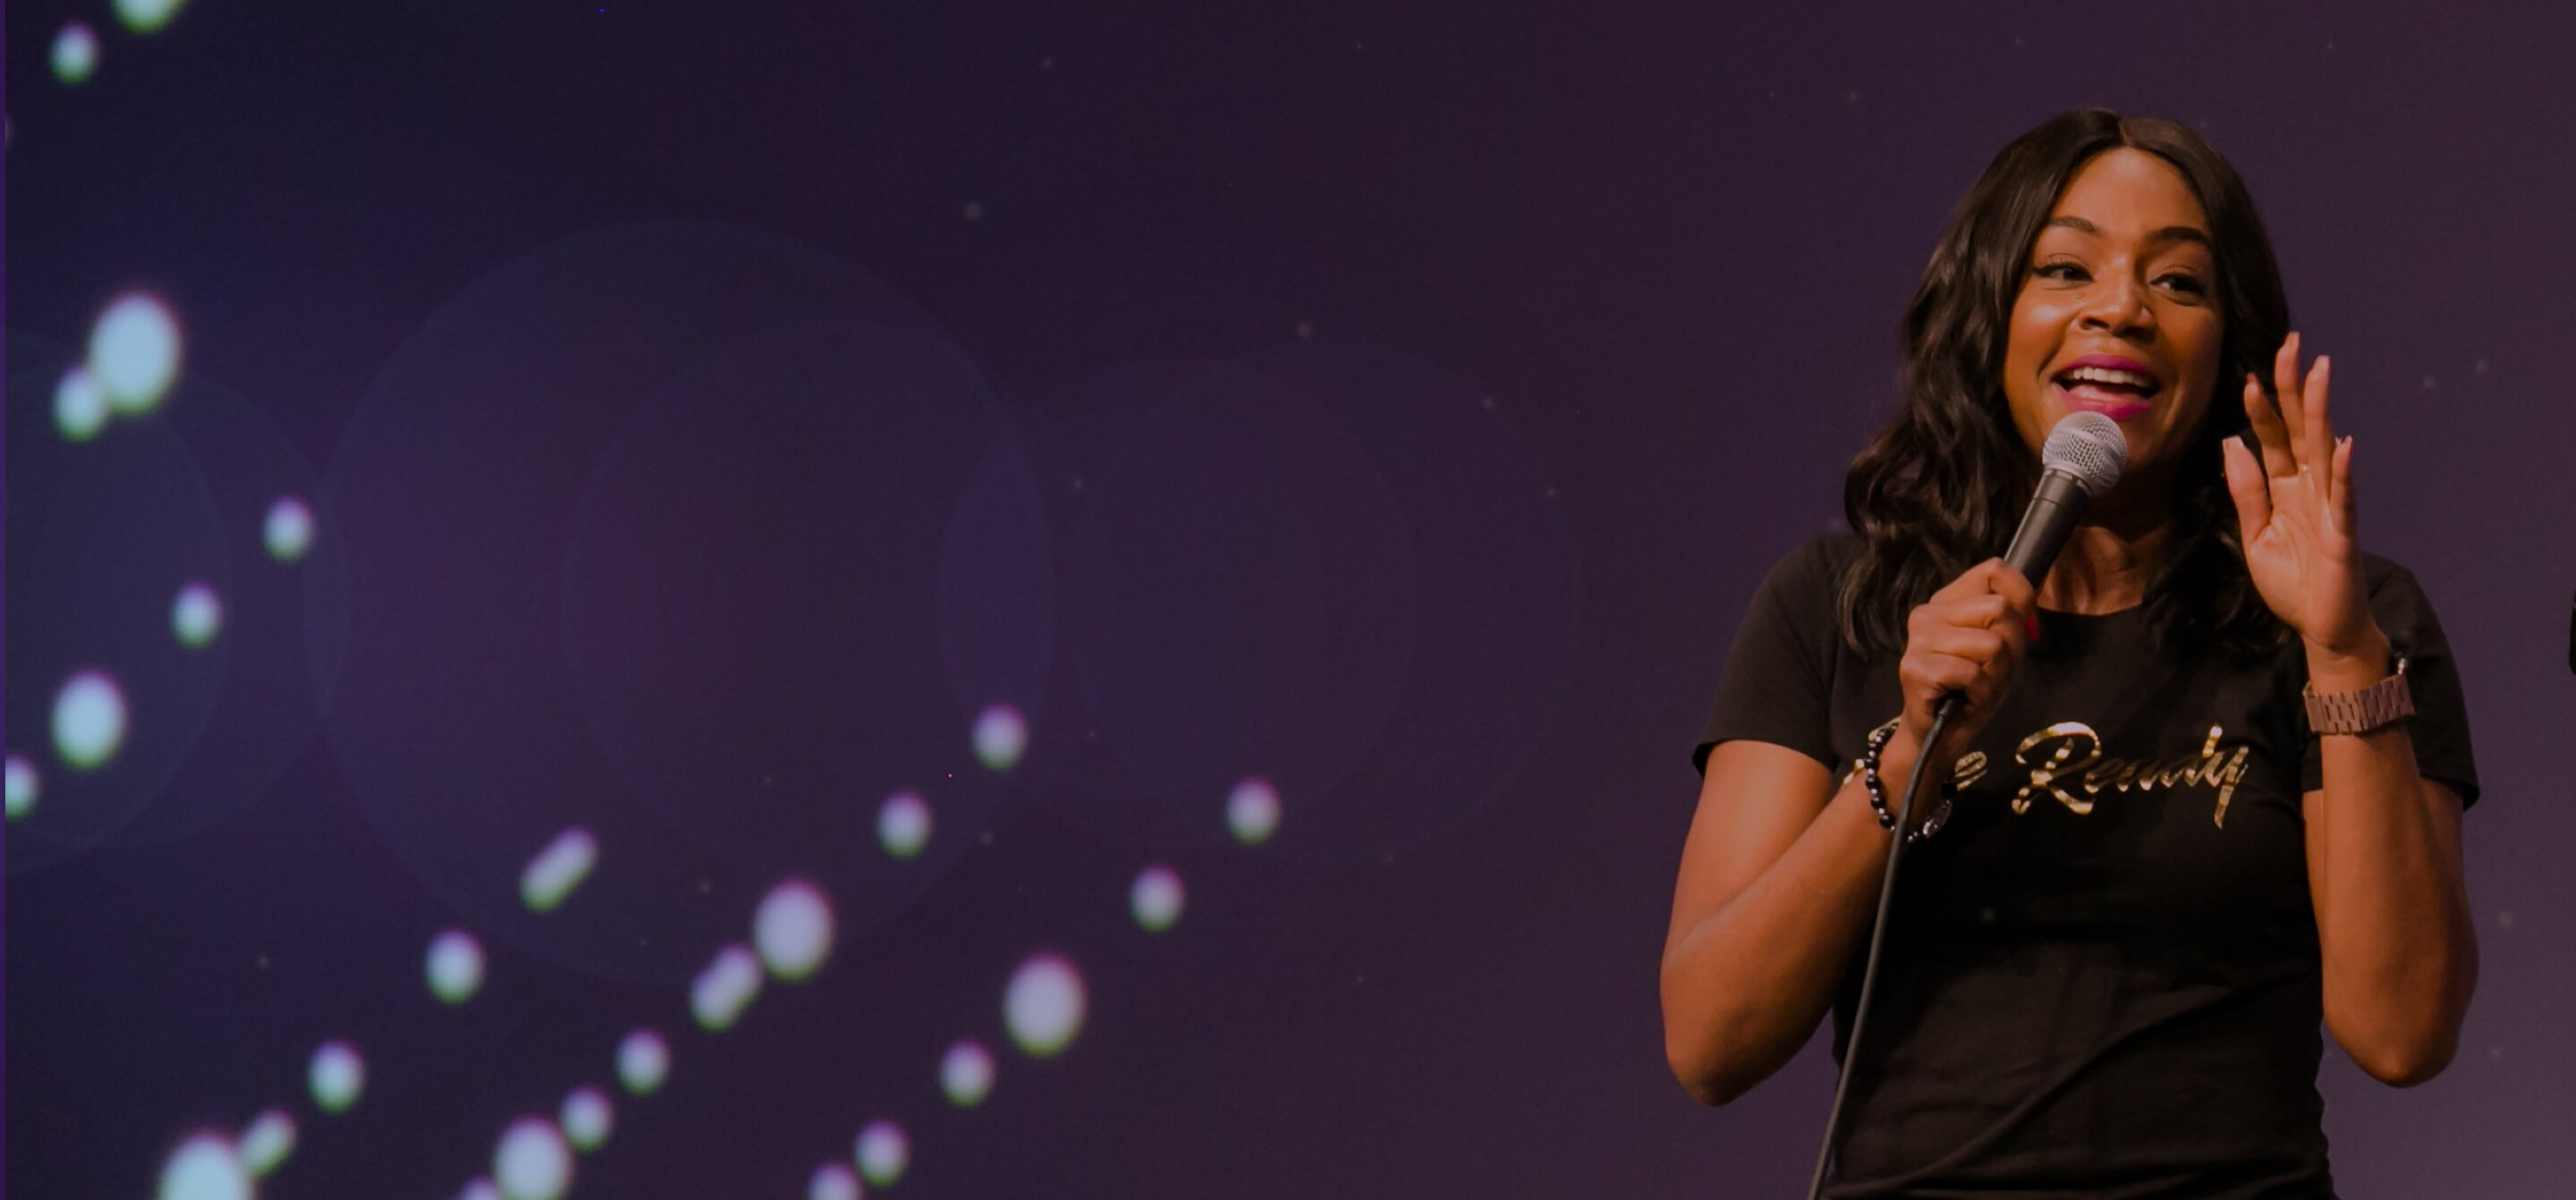 INBOUND 2019 Comedian Tiffany Haddish performing at INBOUND Rocks event